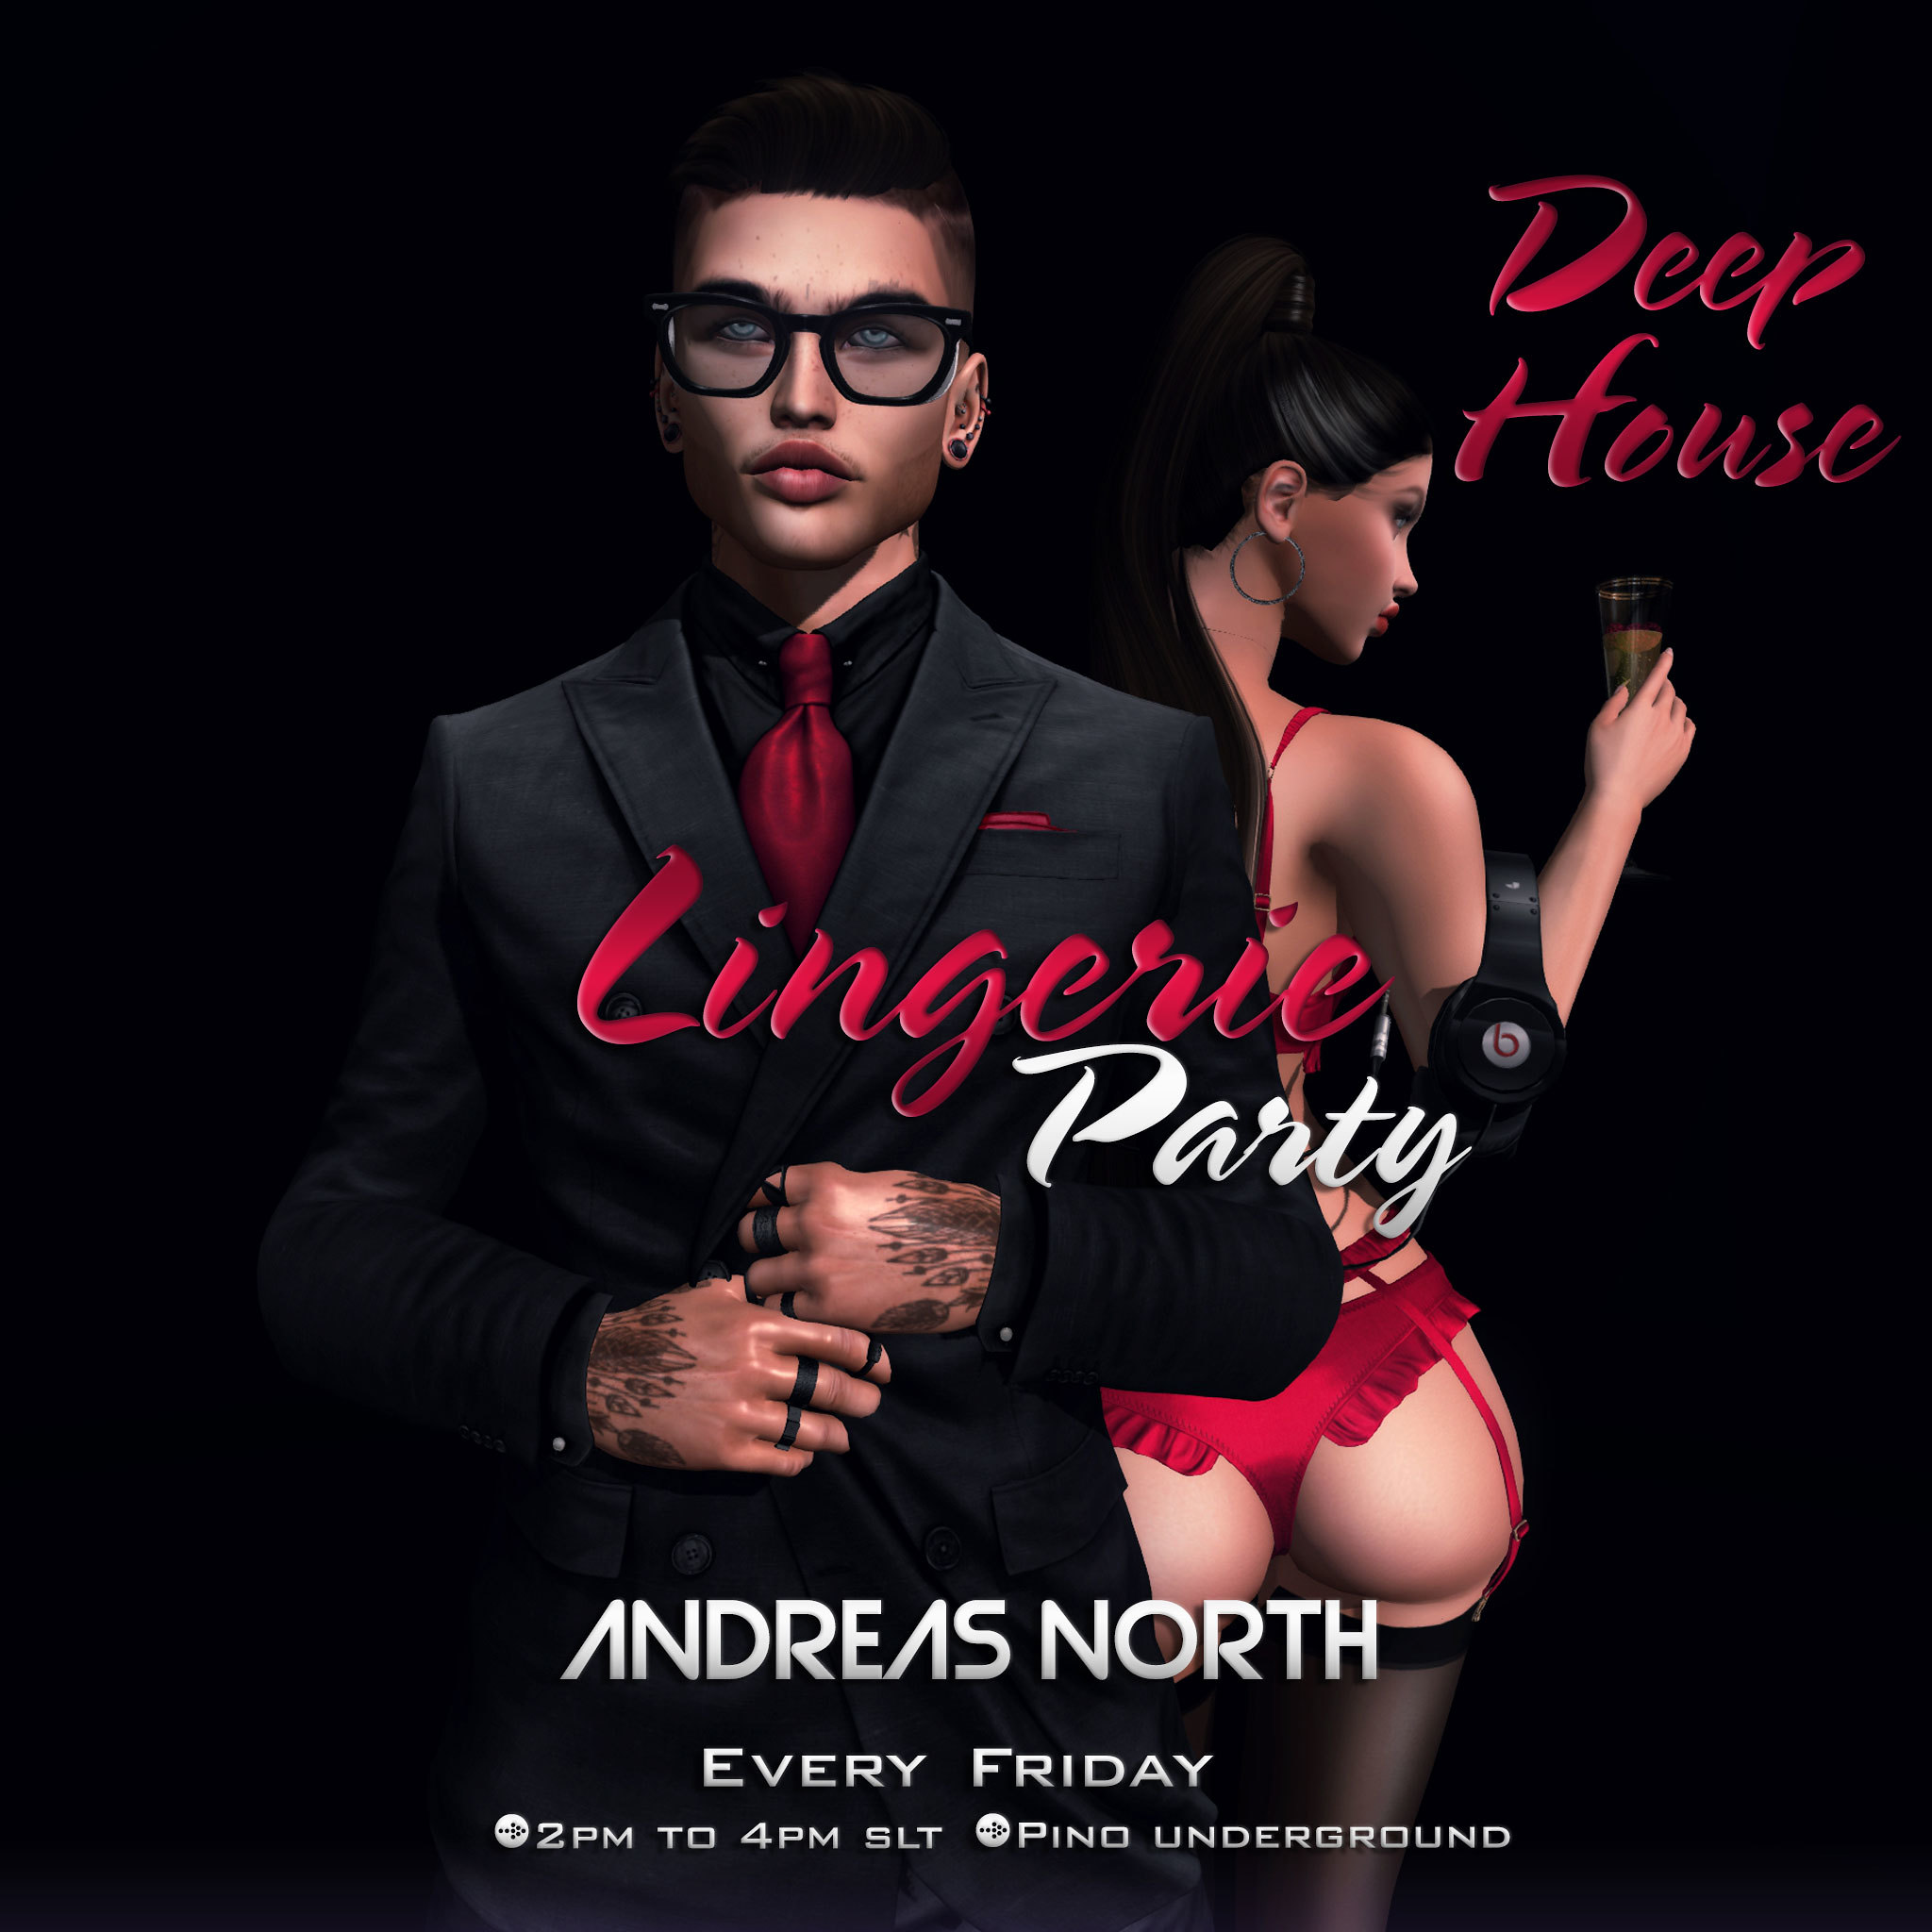 ANDREAS NORTH- LINGERIE PARTY